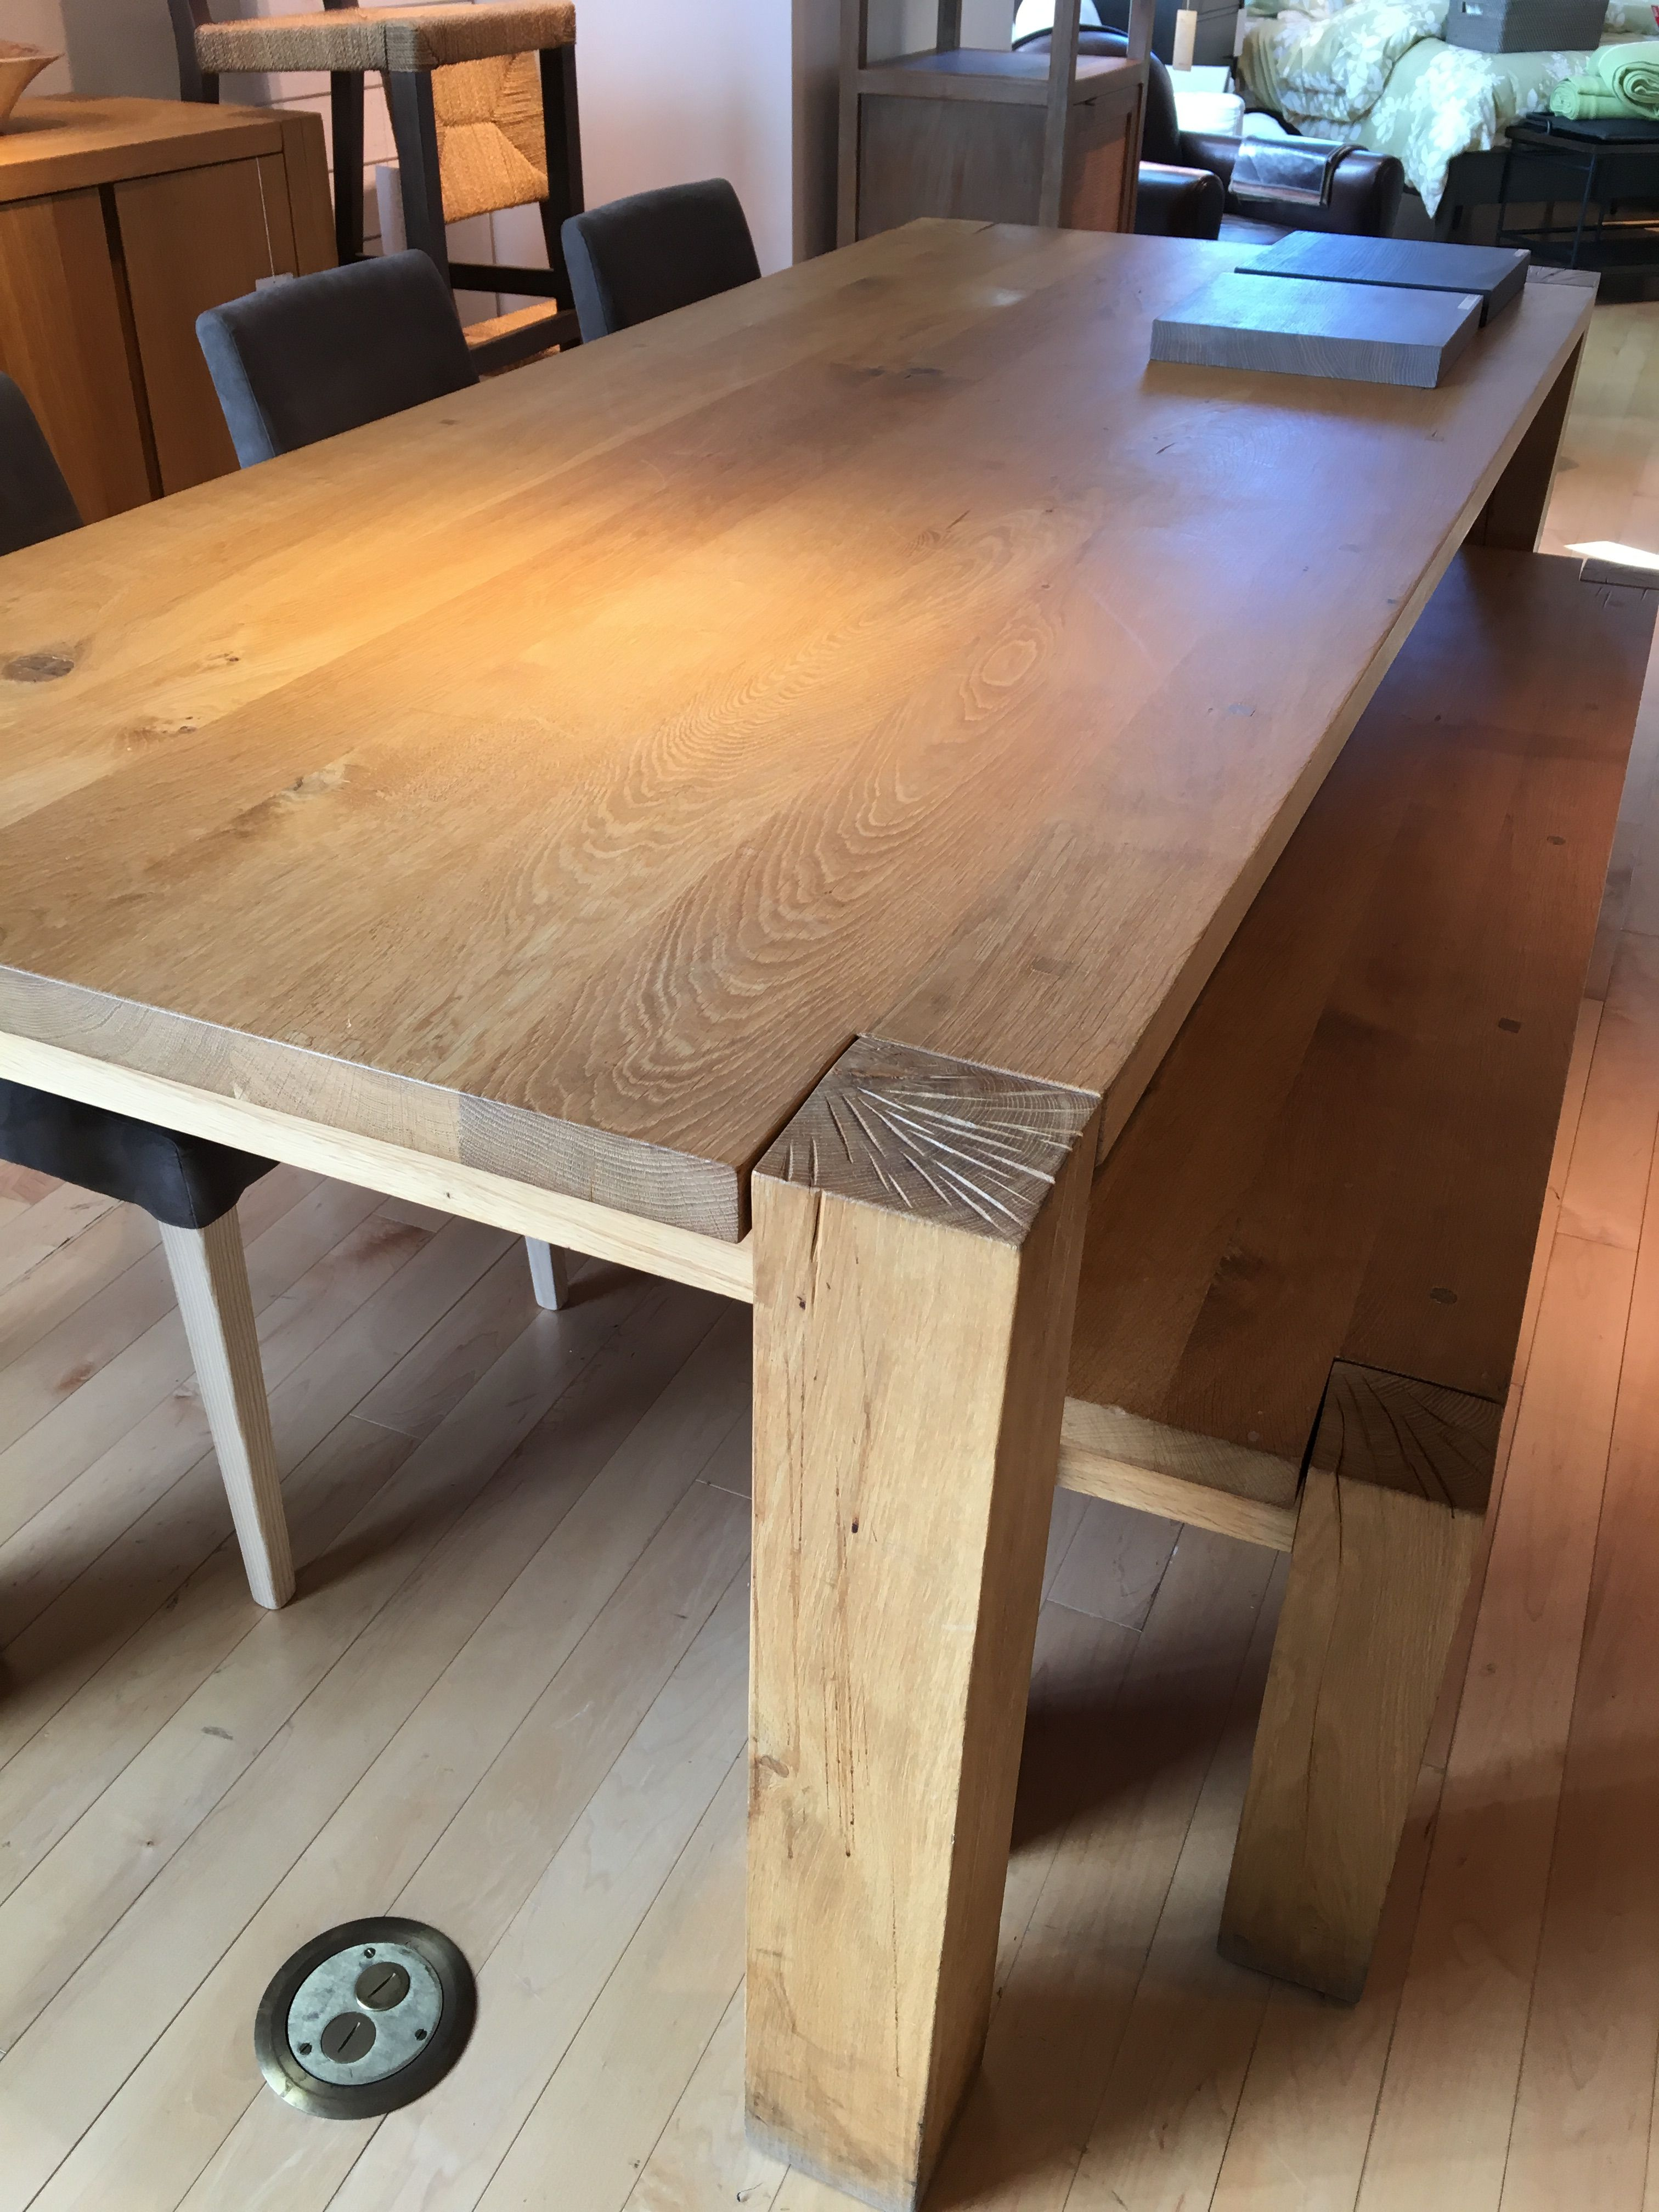 Crate Barrel Big Sur Table Wooden Kitchen Table Dining Table Dining Room Table